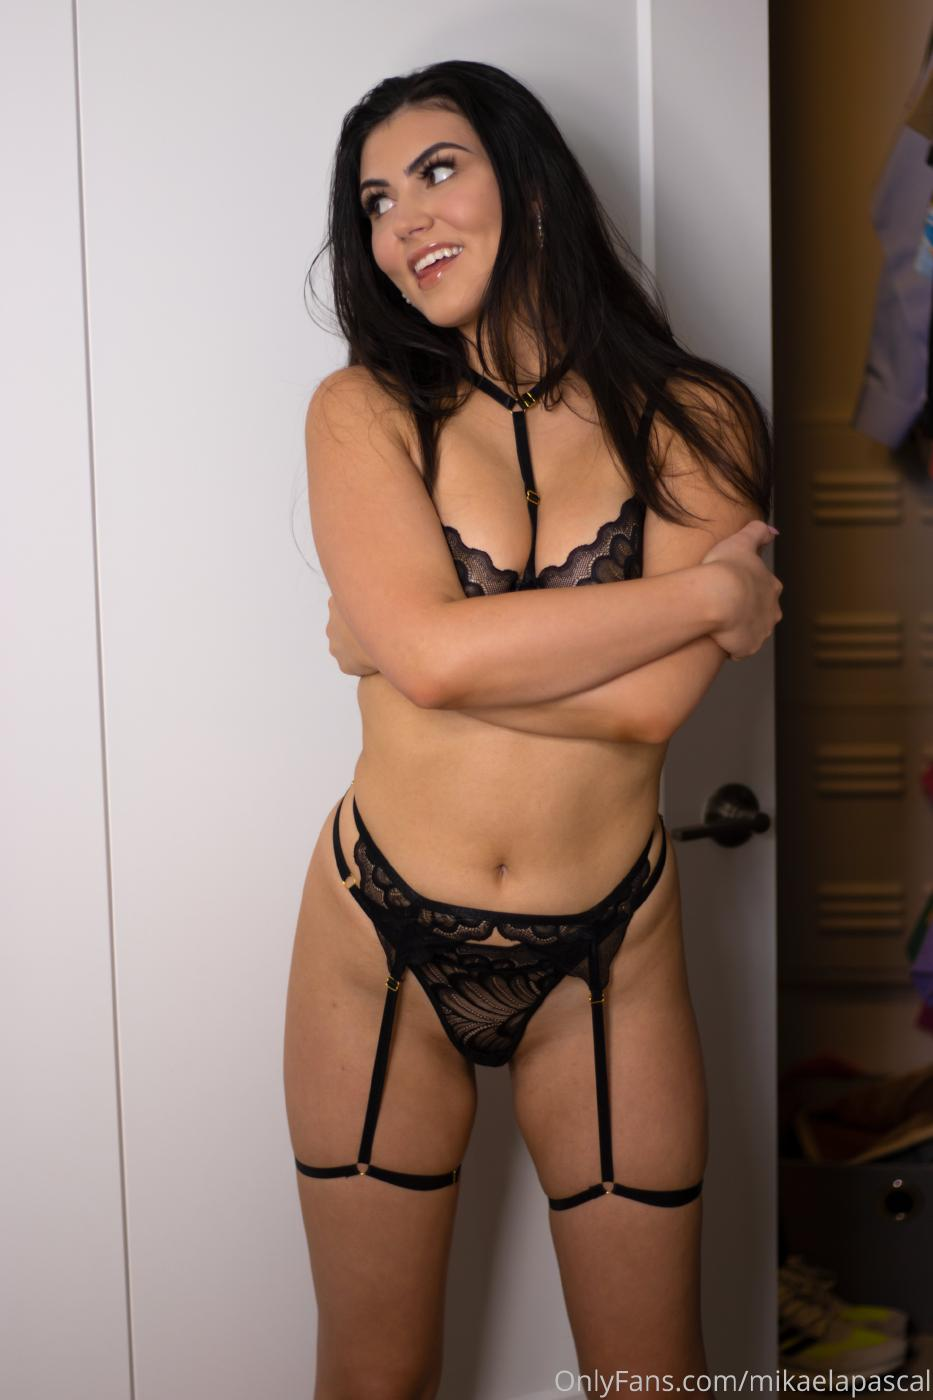 Mikaela Pascal Black See Through Lingerie Onlyfans Set Leaked Xituyf